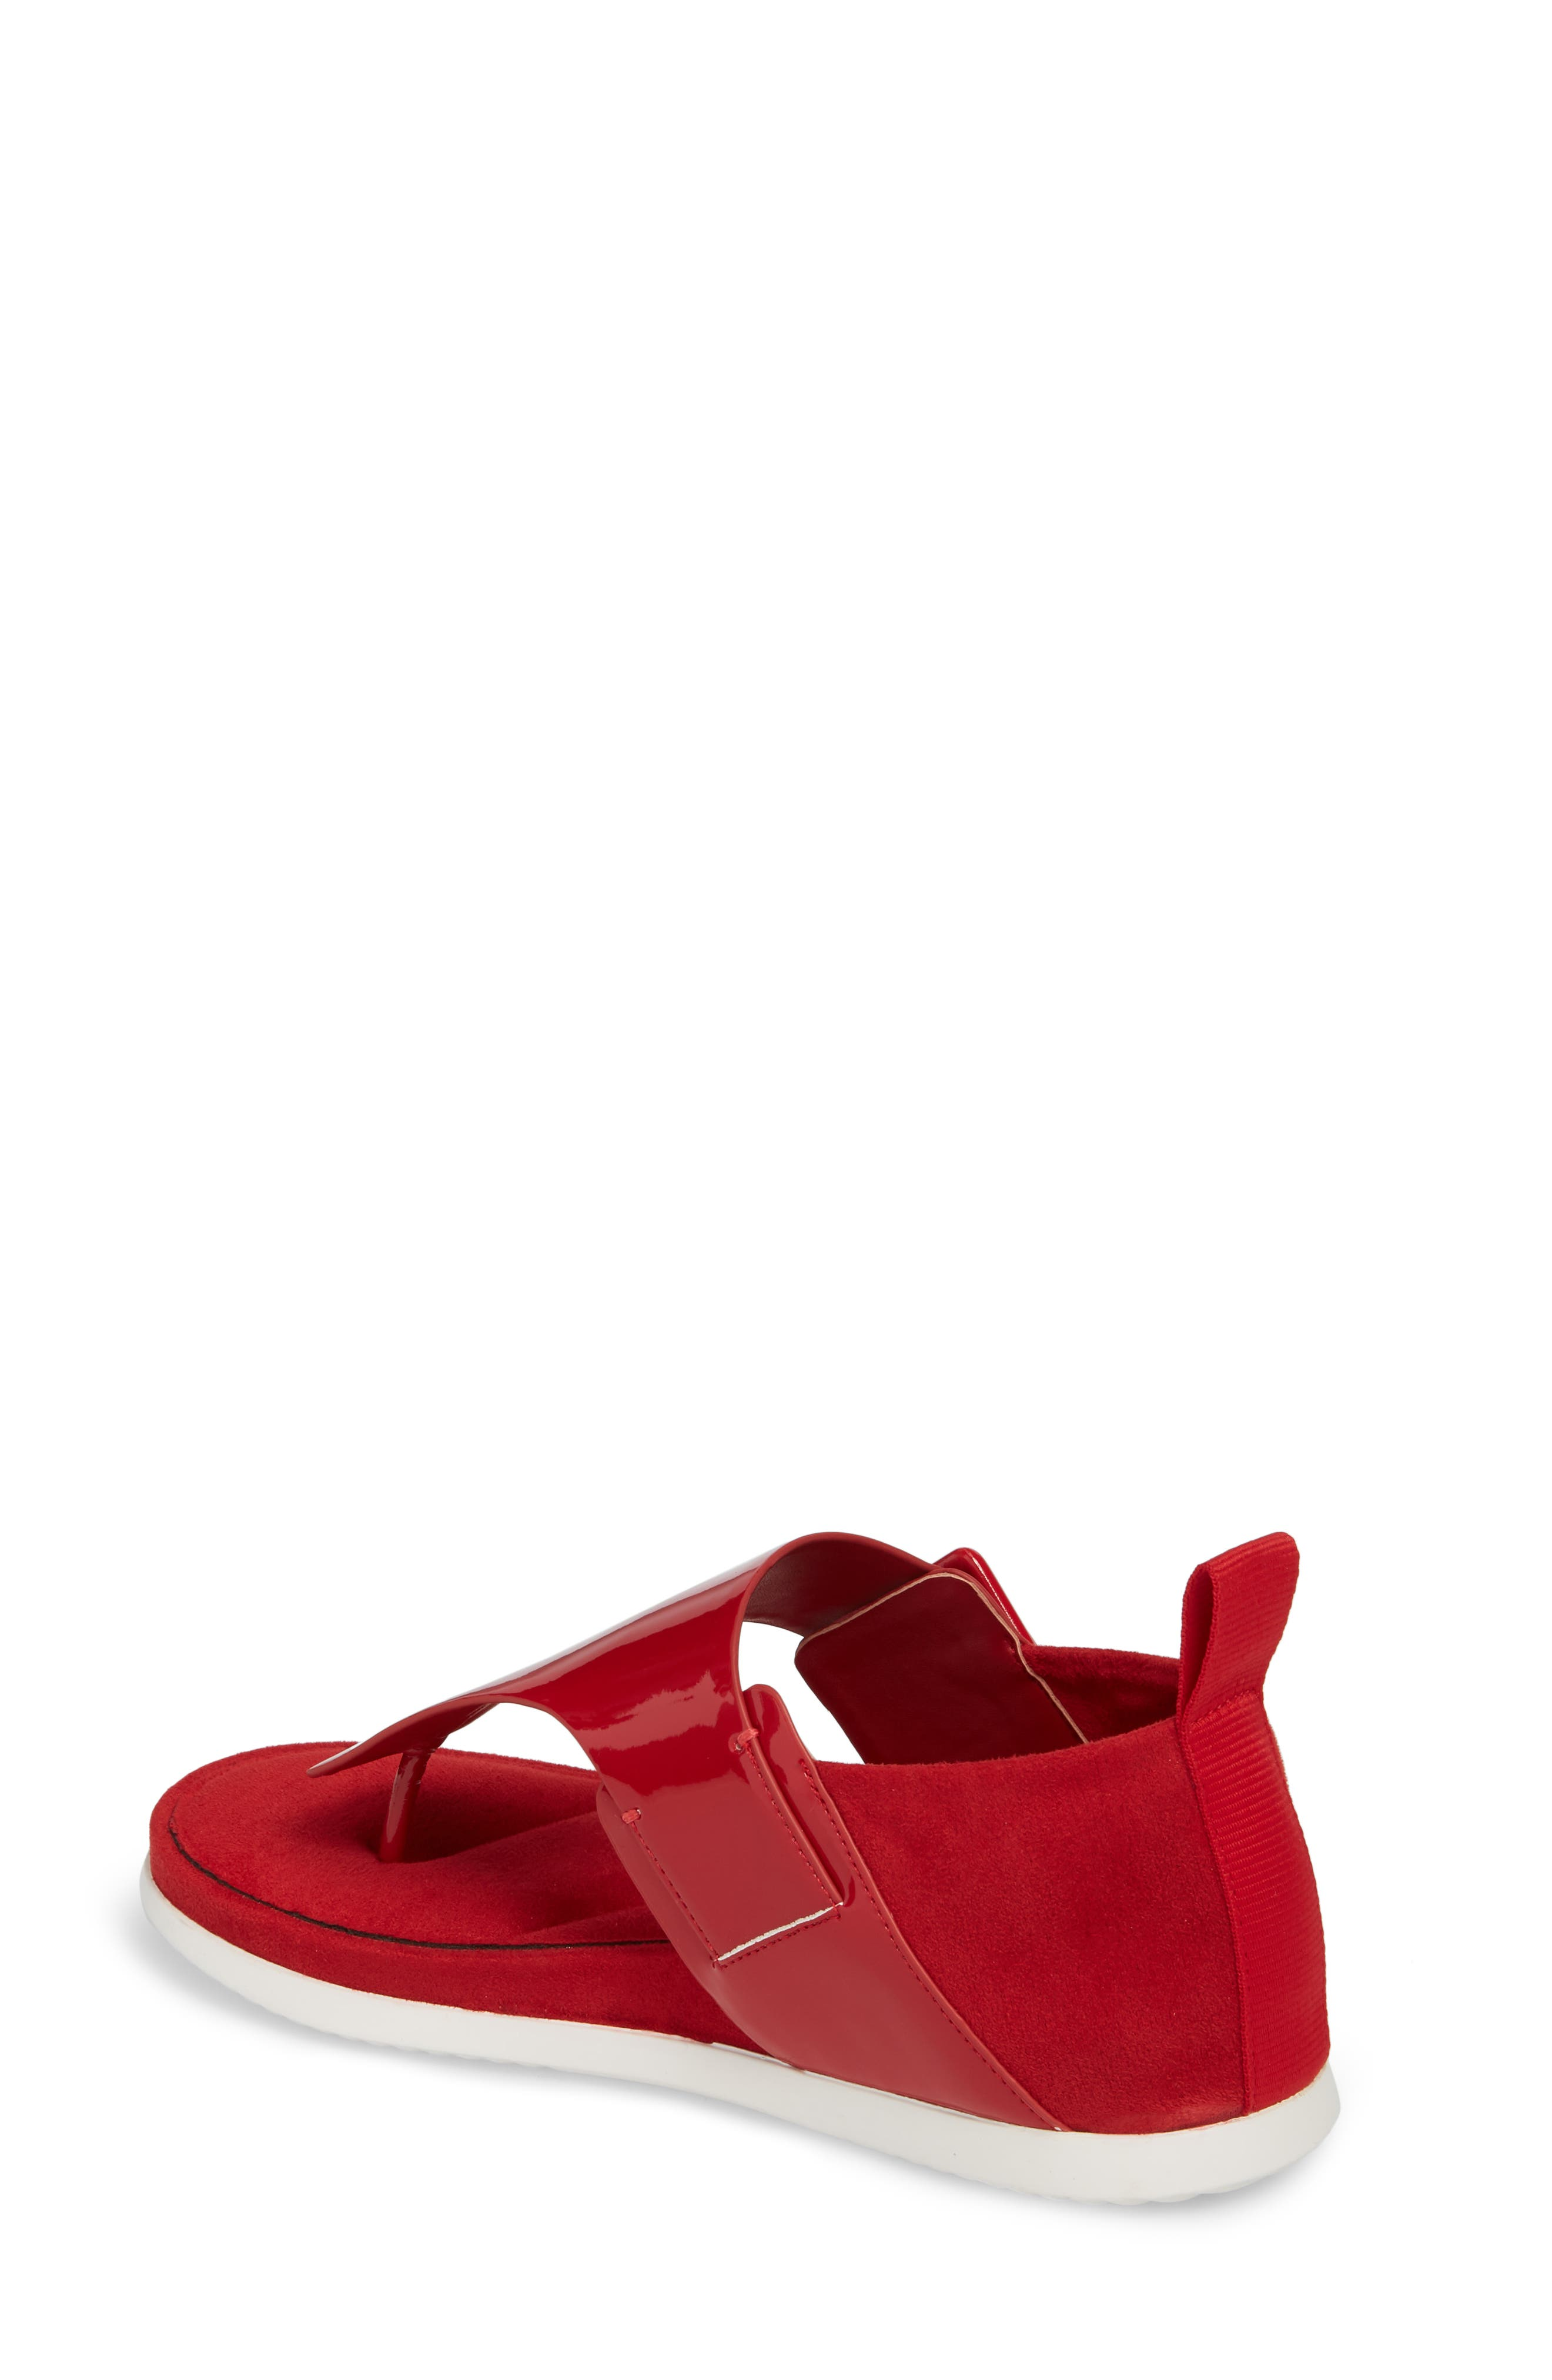 Dionay Wedge Sandal,                             Alternate thumbnail 6, color,